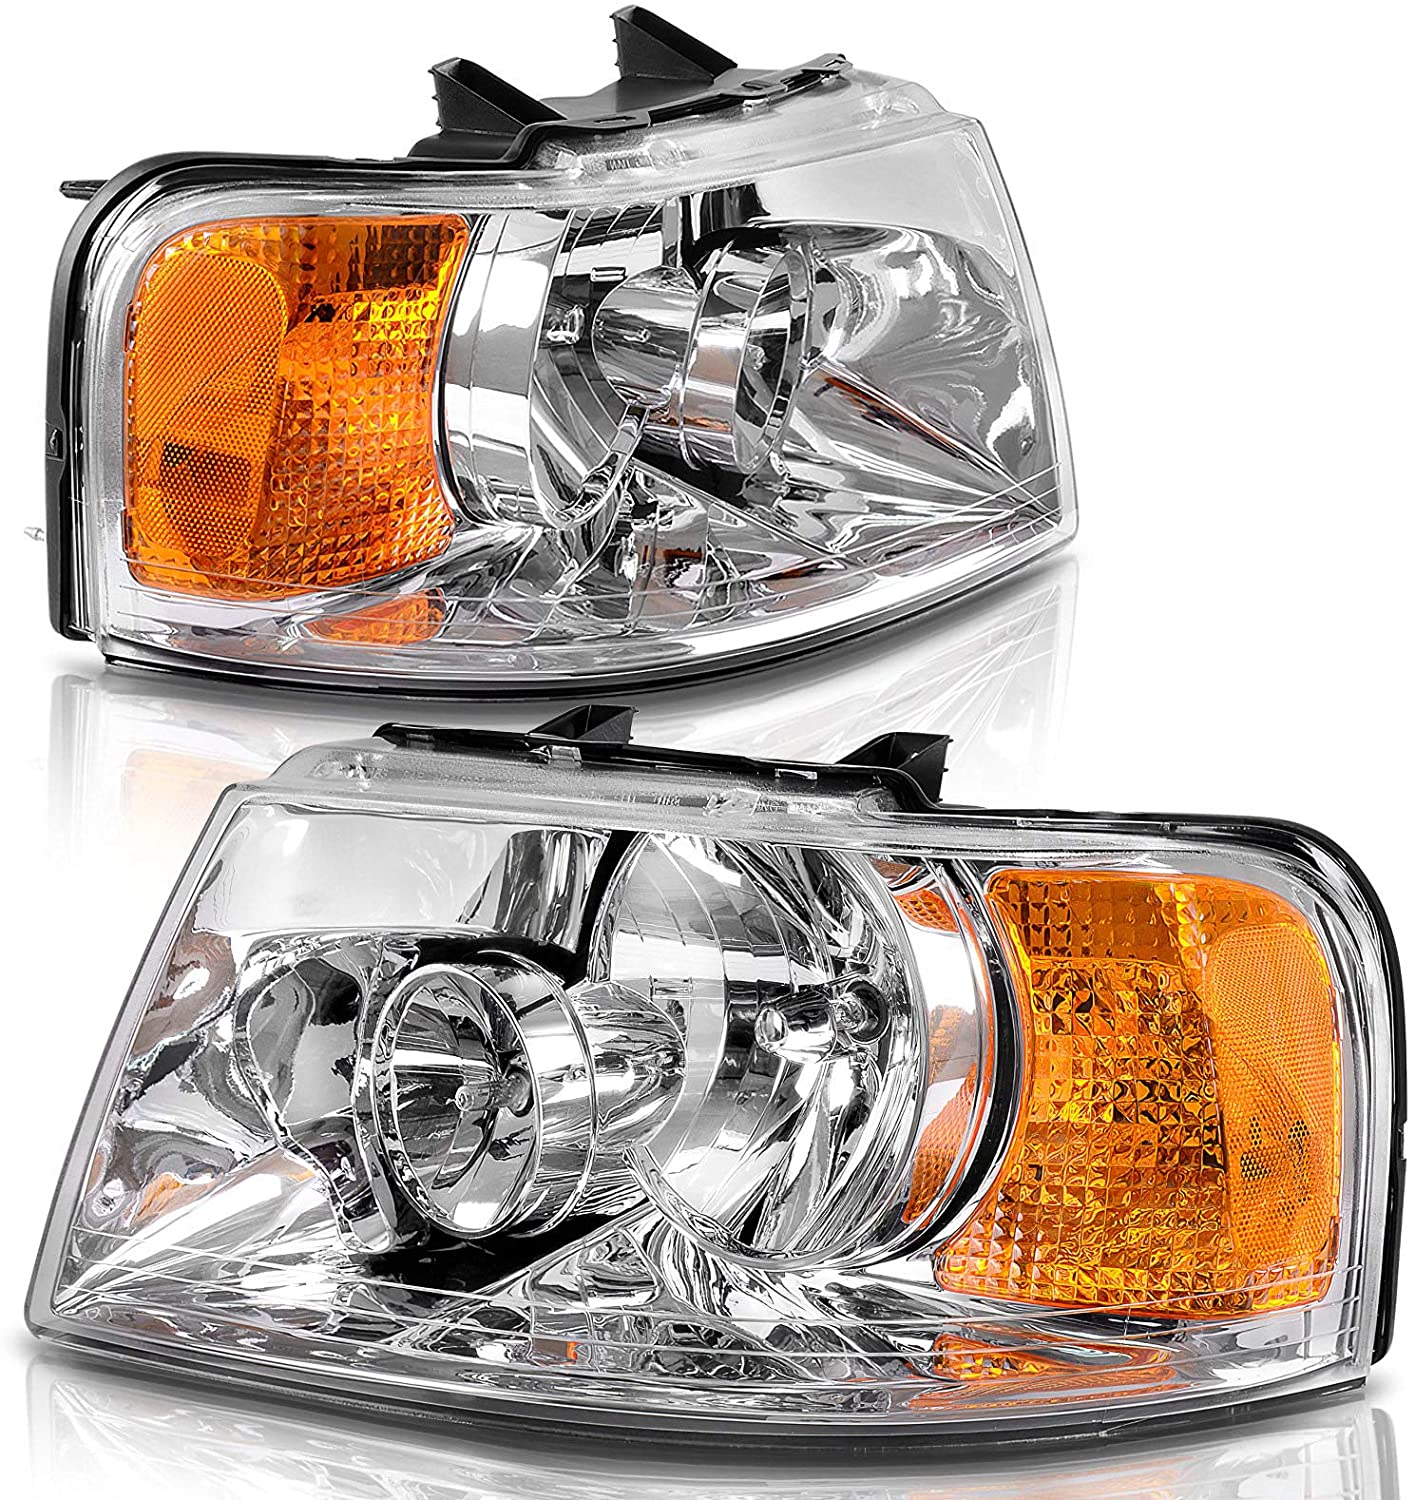 Headlights Assembly Replacement For 03-06 Ford Expedition OE style Headlamp Passenger Driver Side